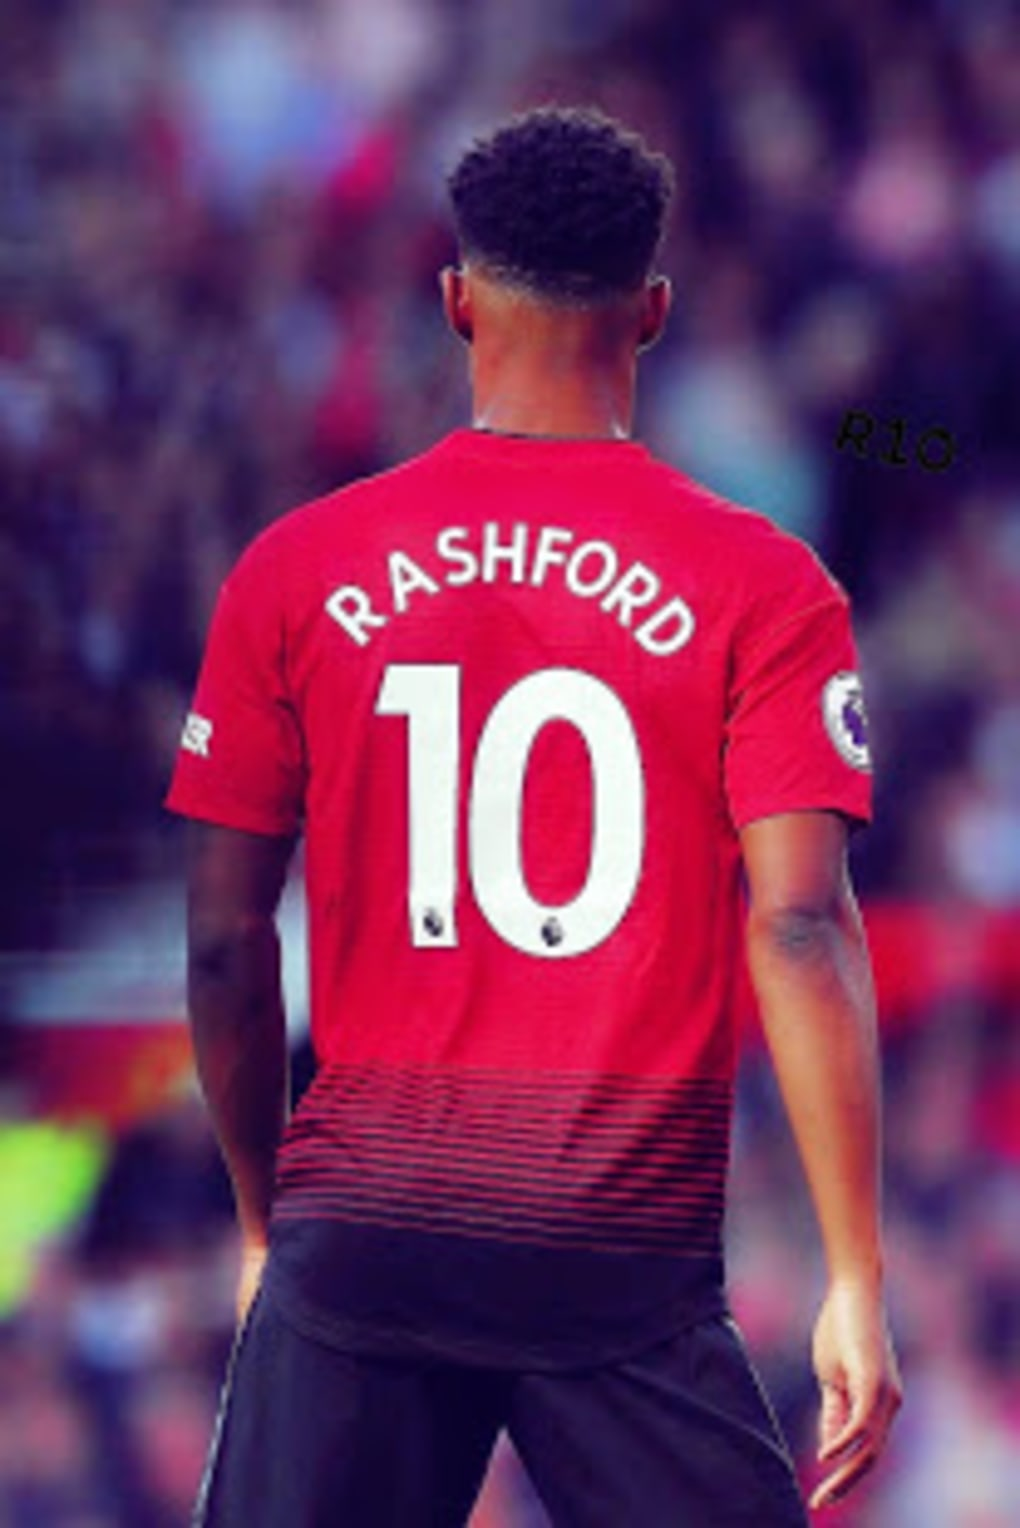 Free Download Marcus Rashford Wallpaper Hd For Android Download 1020x1528 For Your Desktop Mobile Tablet Explore 21 Marcus Rashford Wallpapers Marcus Rashford Wallpapers Marcus Dobre Wallpapers Marcus Mariota Wallpaper